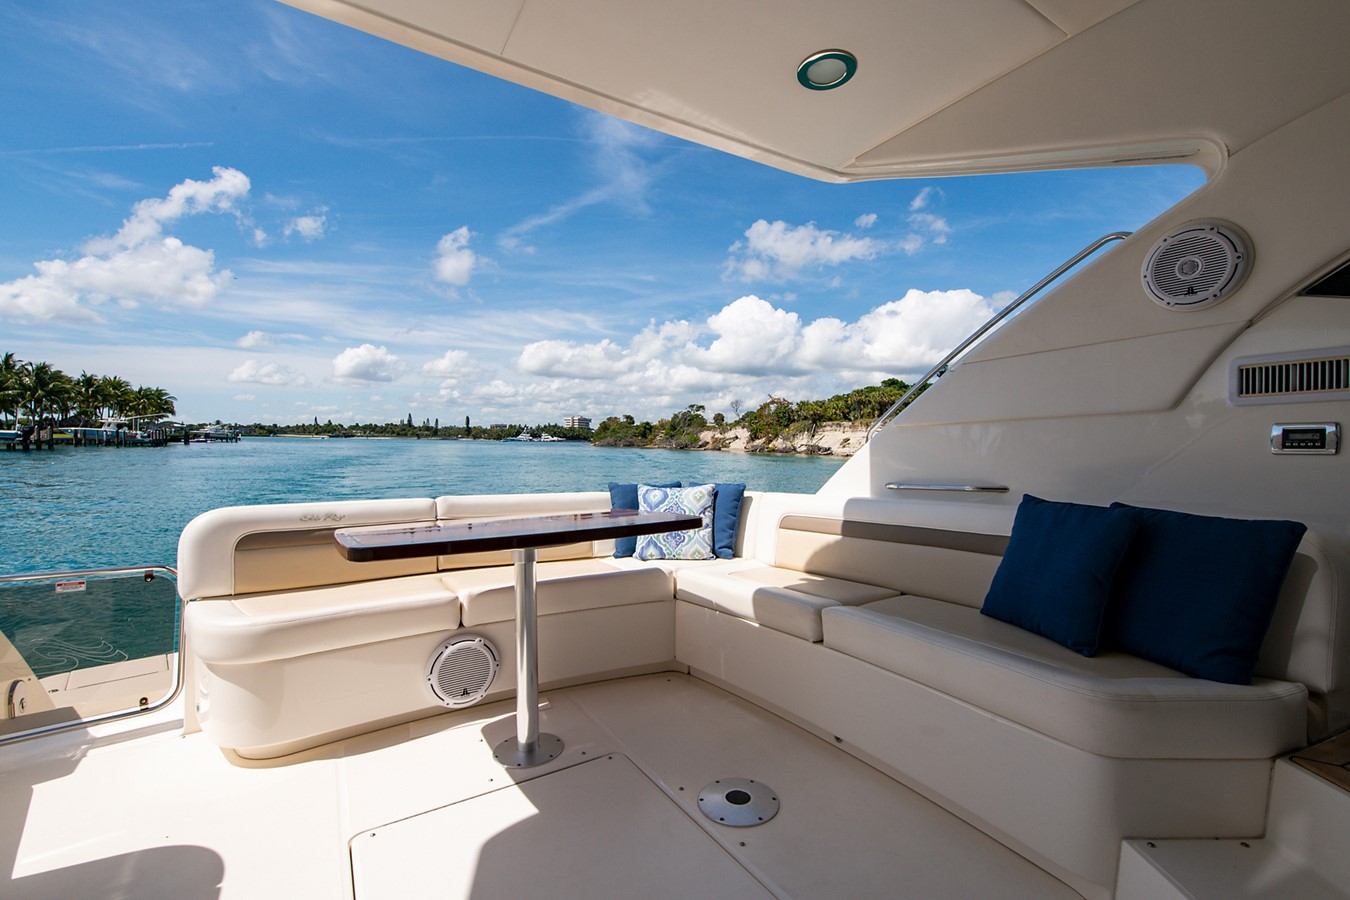 2013 SEA RAY Sundancer Motor Yacht 2531133